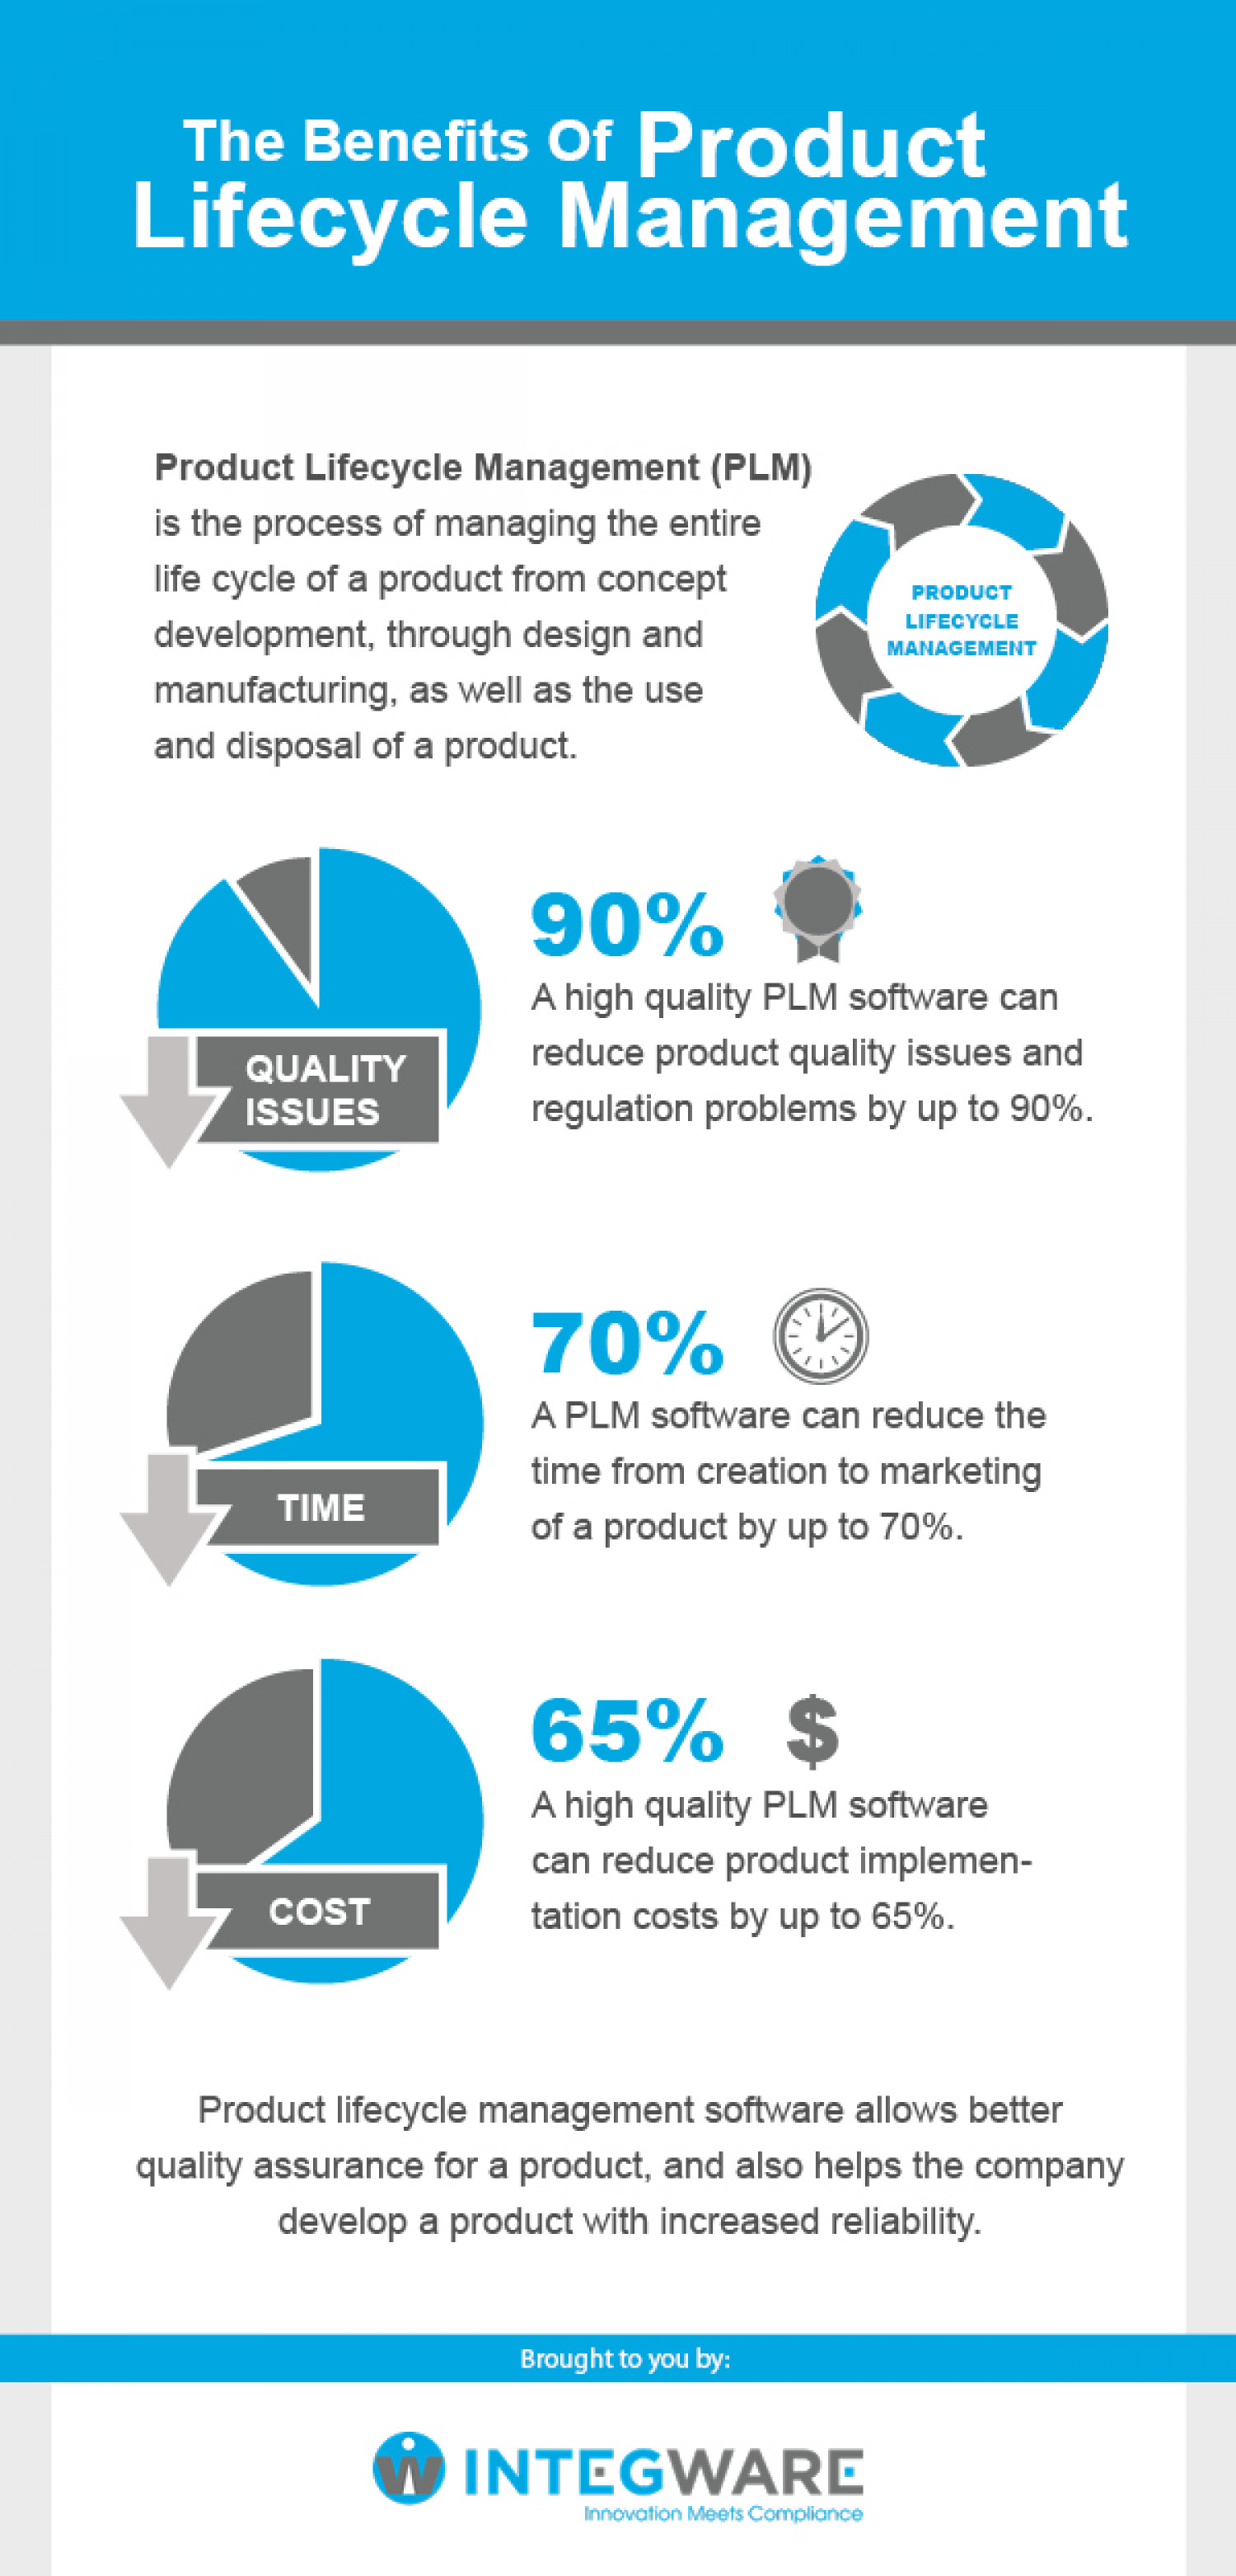 The Benefits of Product Lifecycle Management Infographic